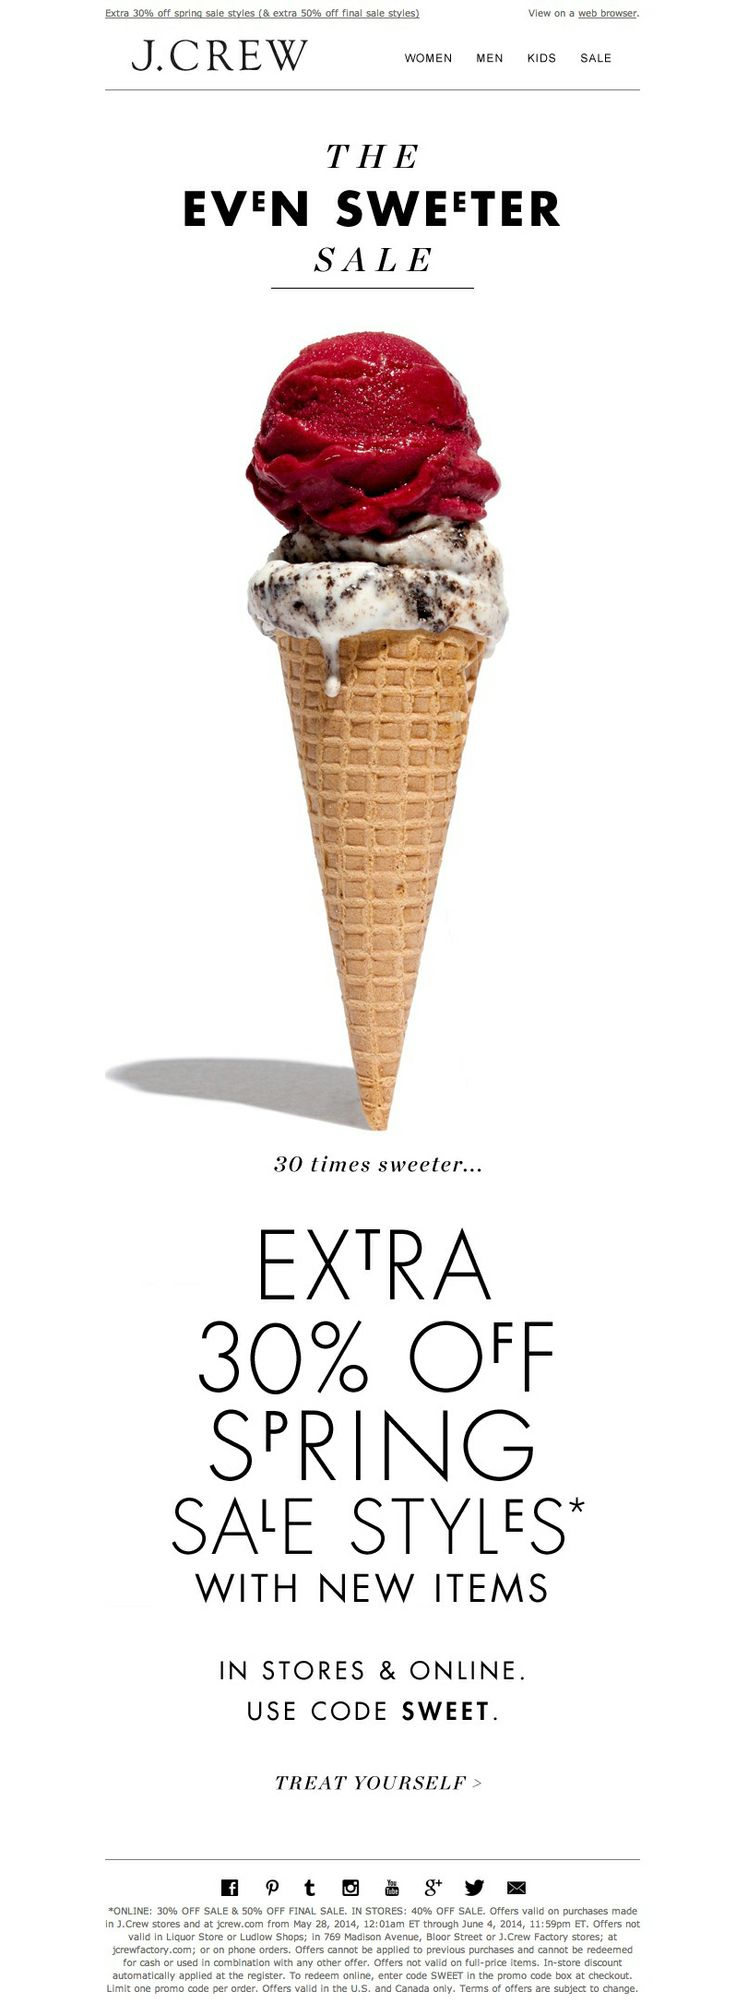 #newsletter 05.2014 A sweet sale has arrived...with new styles